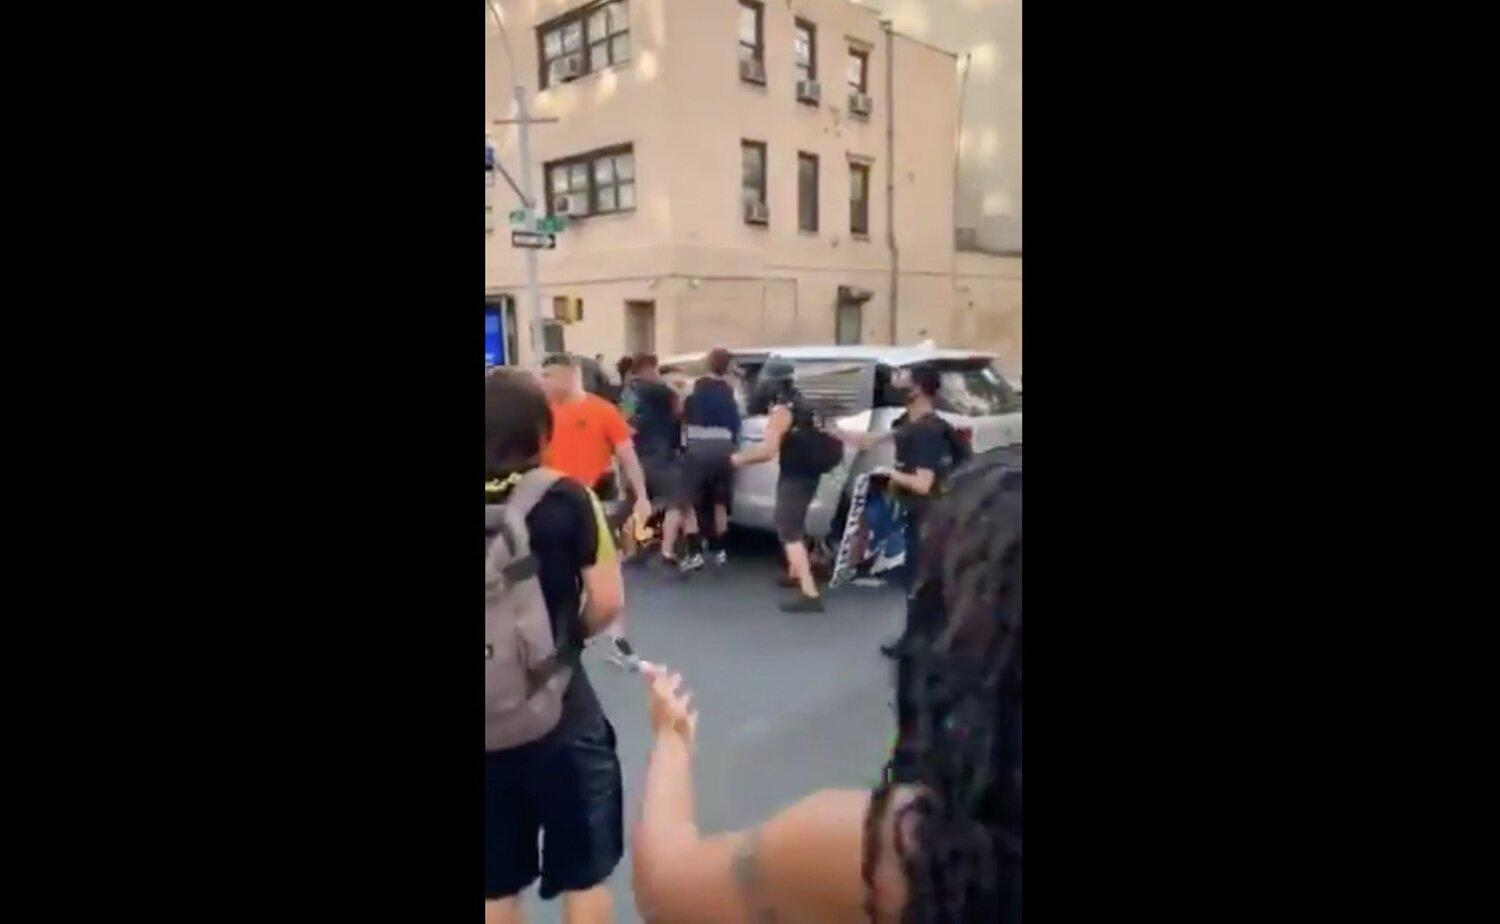 'It Was Like a Kidnapping.' Distressing Video Shows NYPD Tackling Teen Protester, Forcing Her Into Unmarked Van